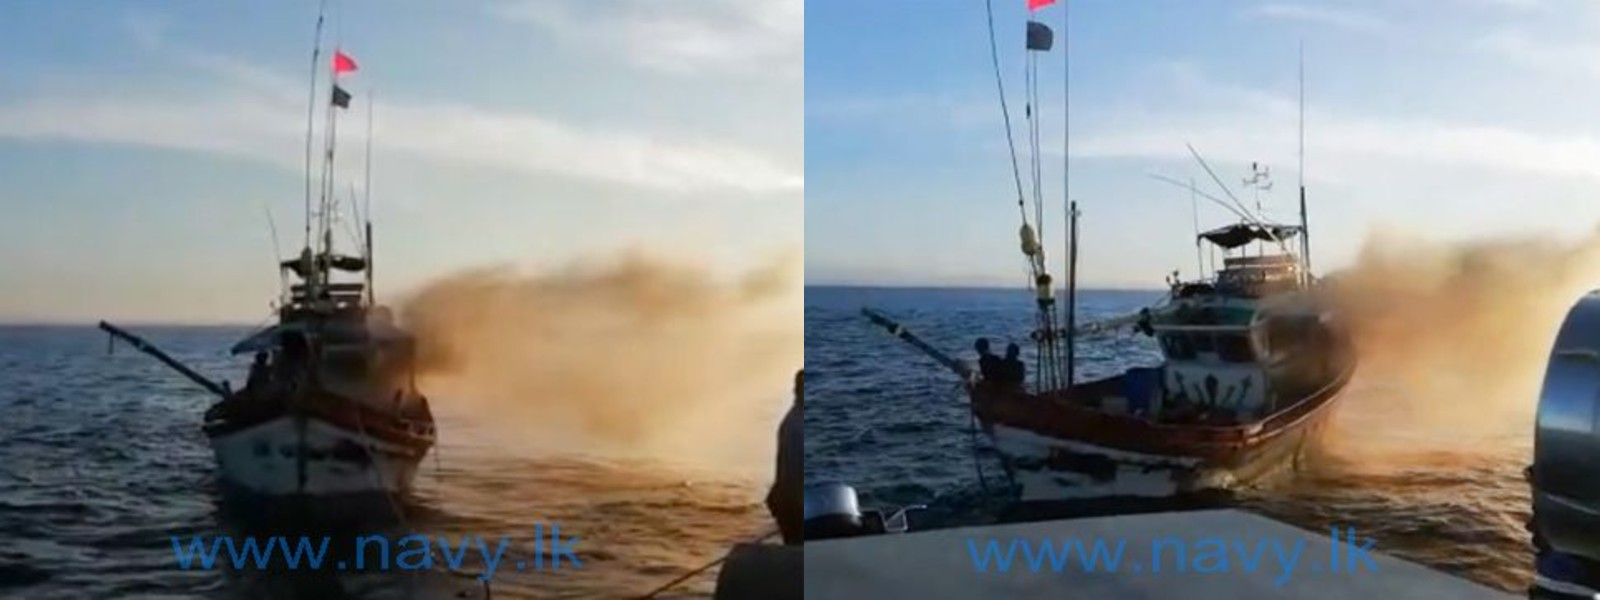 Navy safely brings ashore fire-hit fishing trawler during the weekend